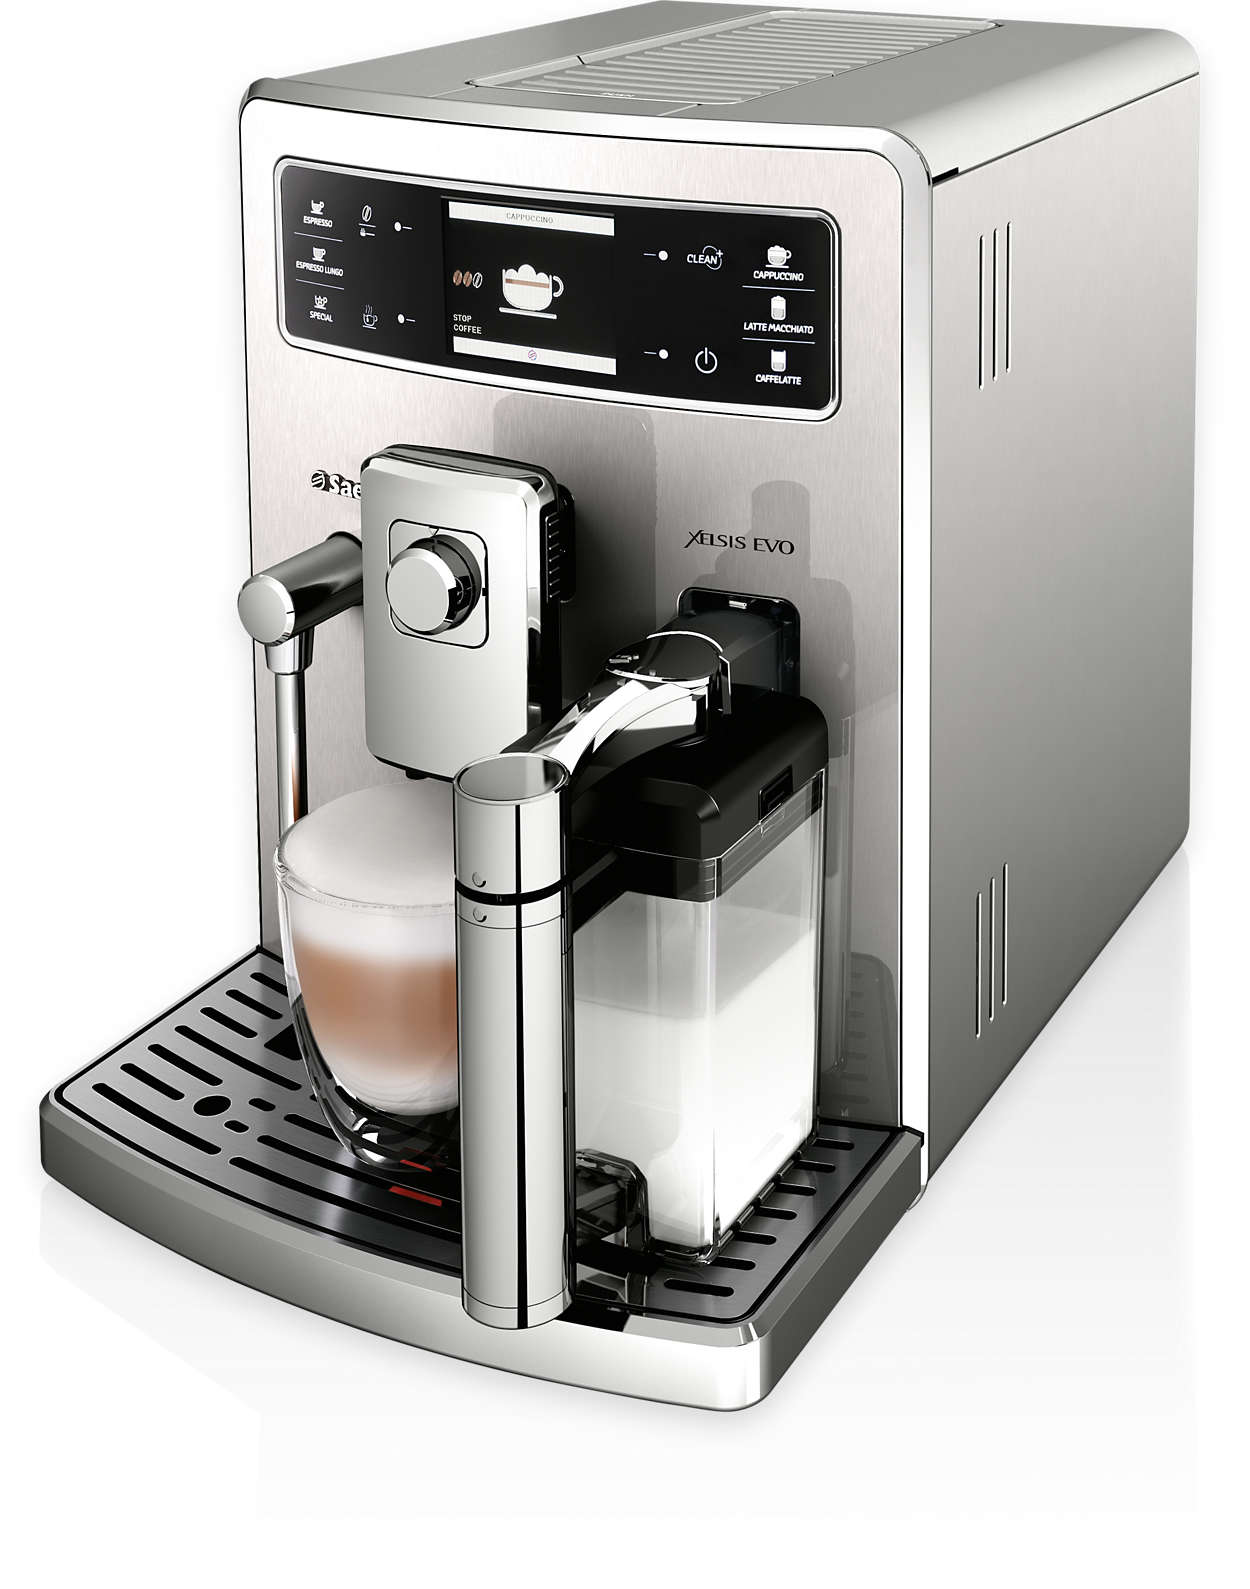 xelsis evo super automatic espresso machine hd8954 47 saeco. Black Bedroom Furniture Sets. Home Design Ideas